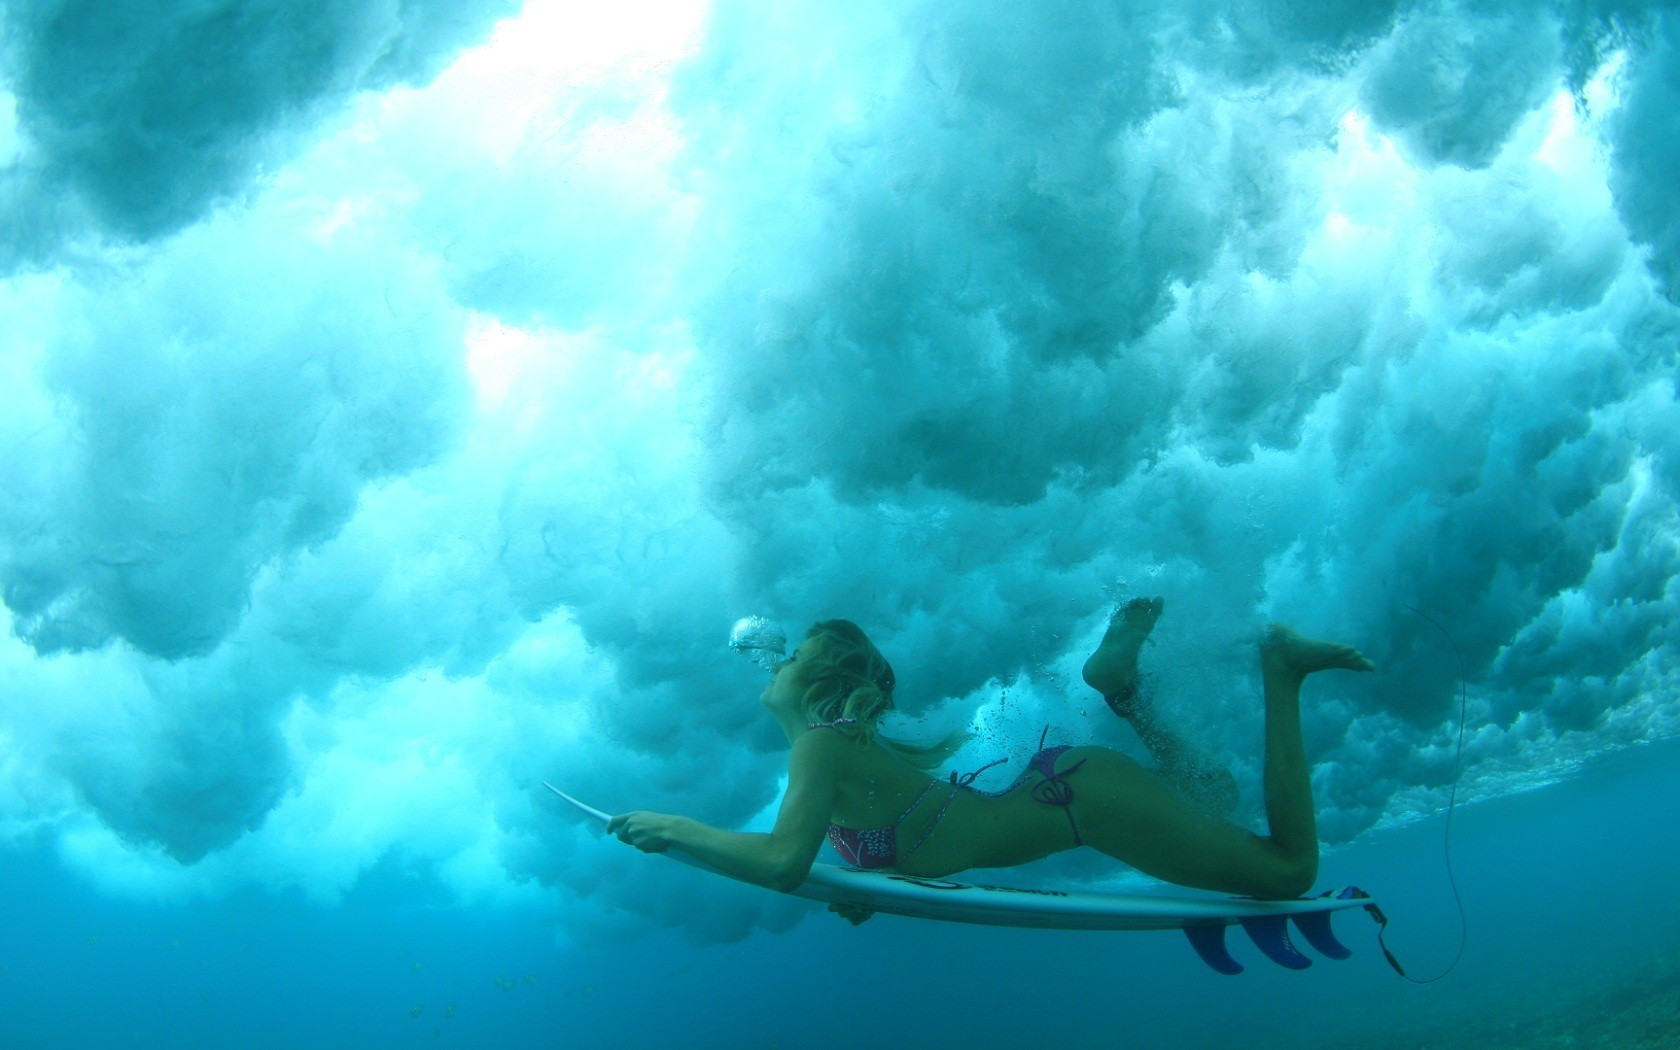 woman bikini swimming surfboards HD Wallpaper